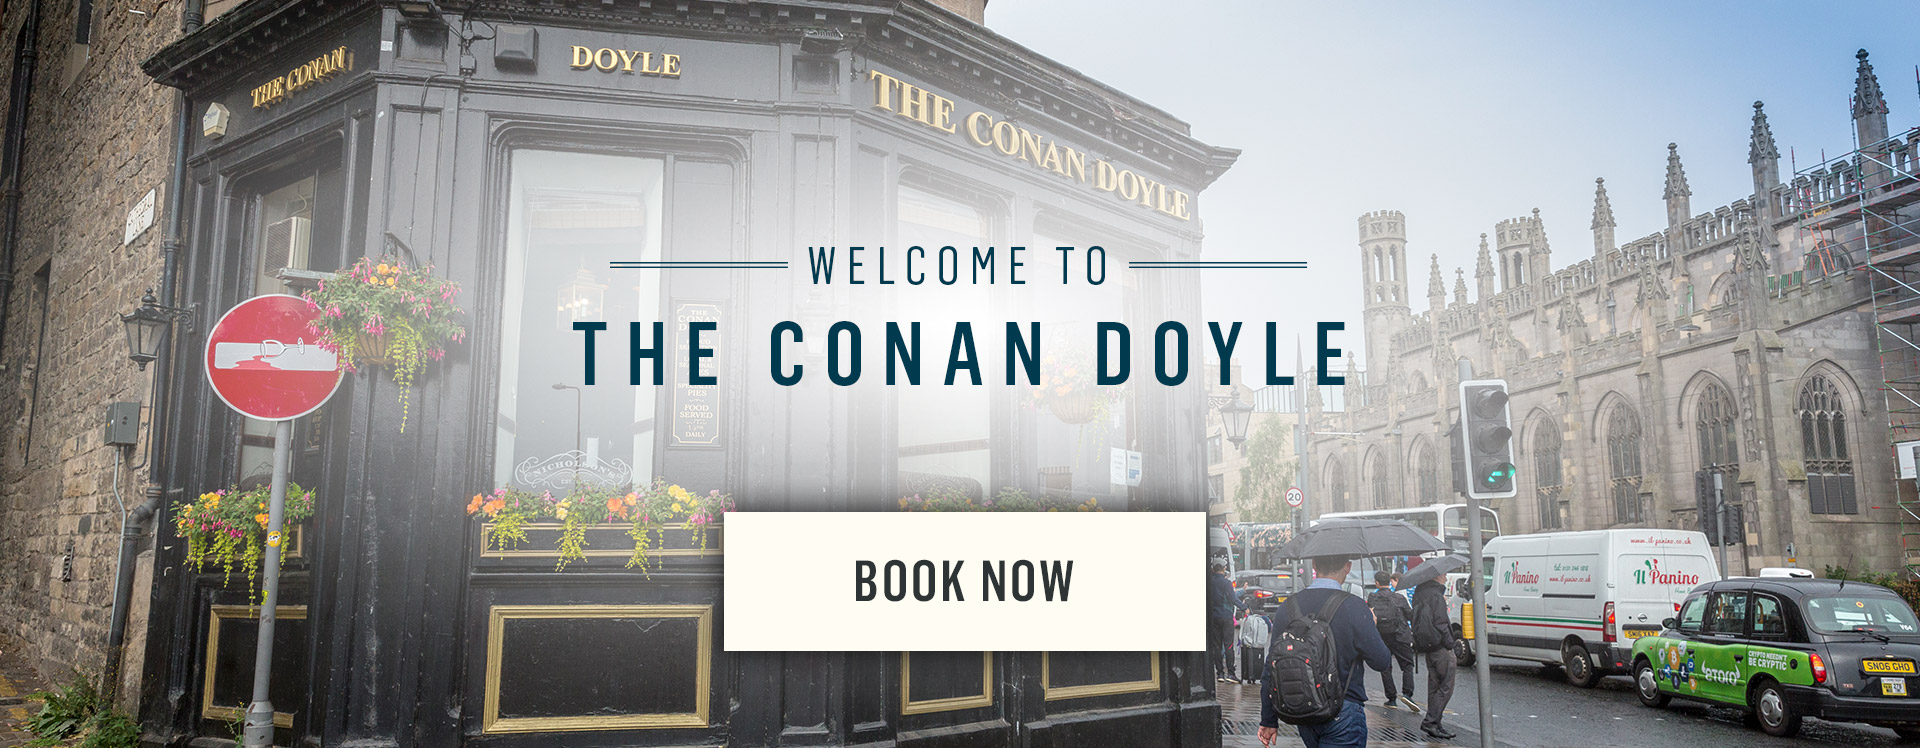 Welcome to The Conan Doyle - Book Now